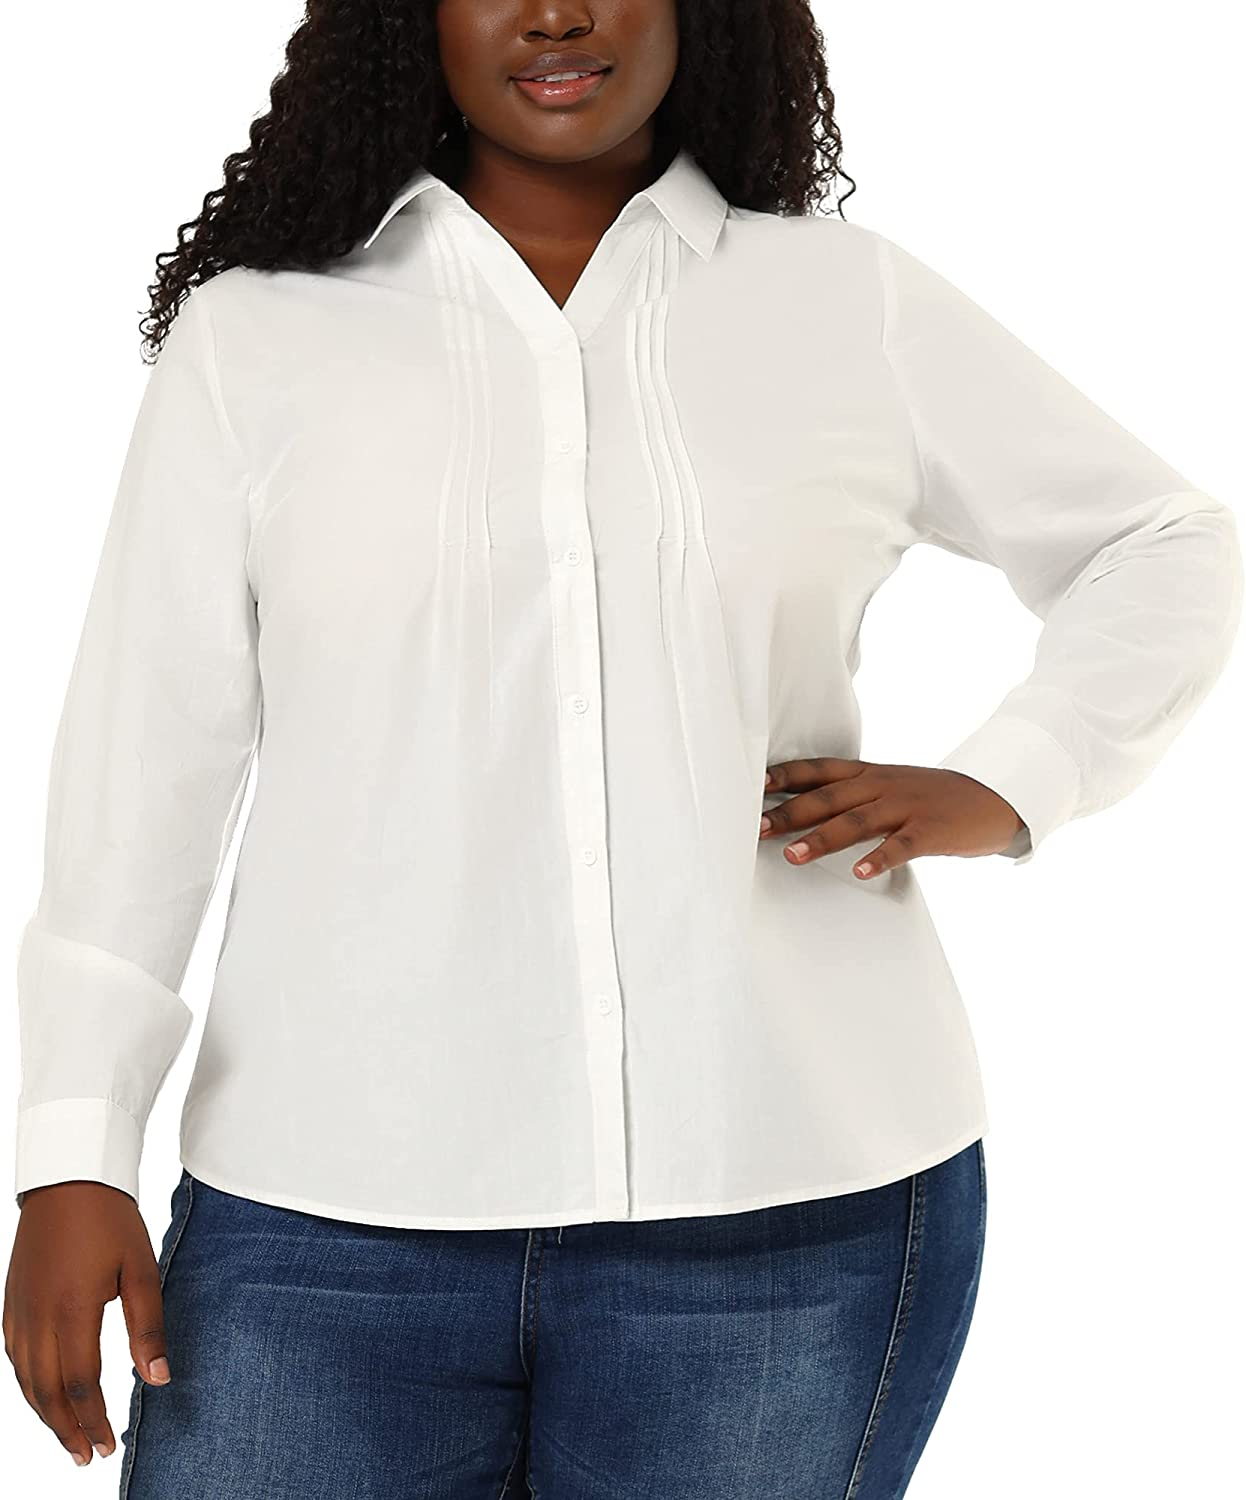 Agnes Orinda Plus Size Shirts for Women Button Down Shirt Front Pleated Long Sleeve Blouse